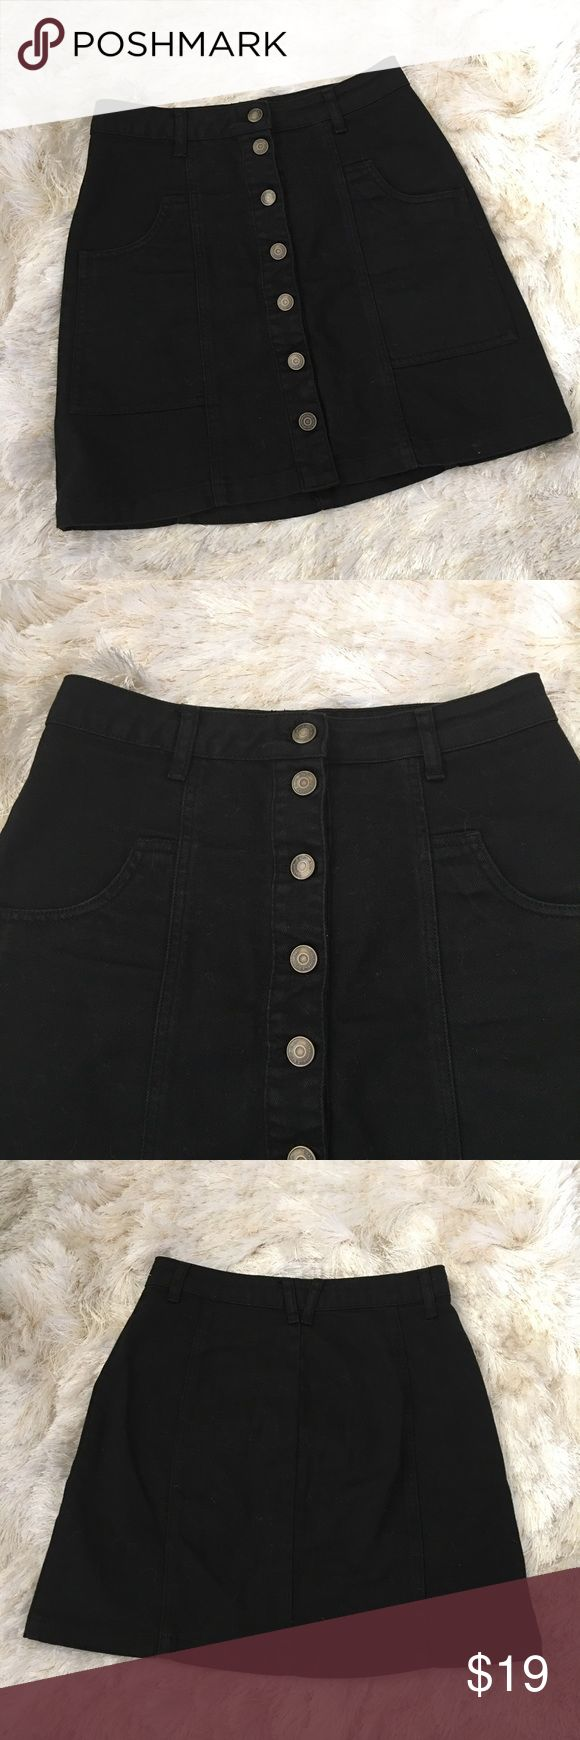 "Black denim button front mini skirt 2 Stradivarius black denim button front skirt. Size 2. Worn once, great condition. Two front pork chop pockets. Belt loops. Measurements when flat: waist 26"", hips 33"", length 16"". Made of 100% cotton. ❌No trade. ❌ No low offers. ❌ stradivarius Skirts Mini"